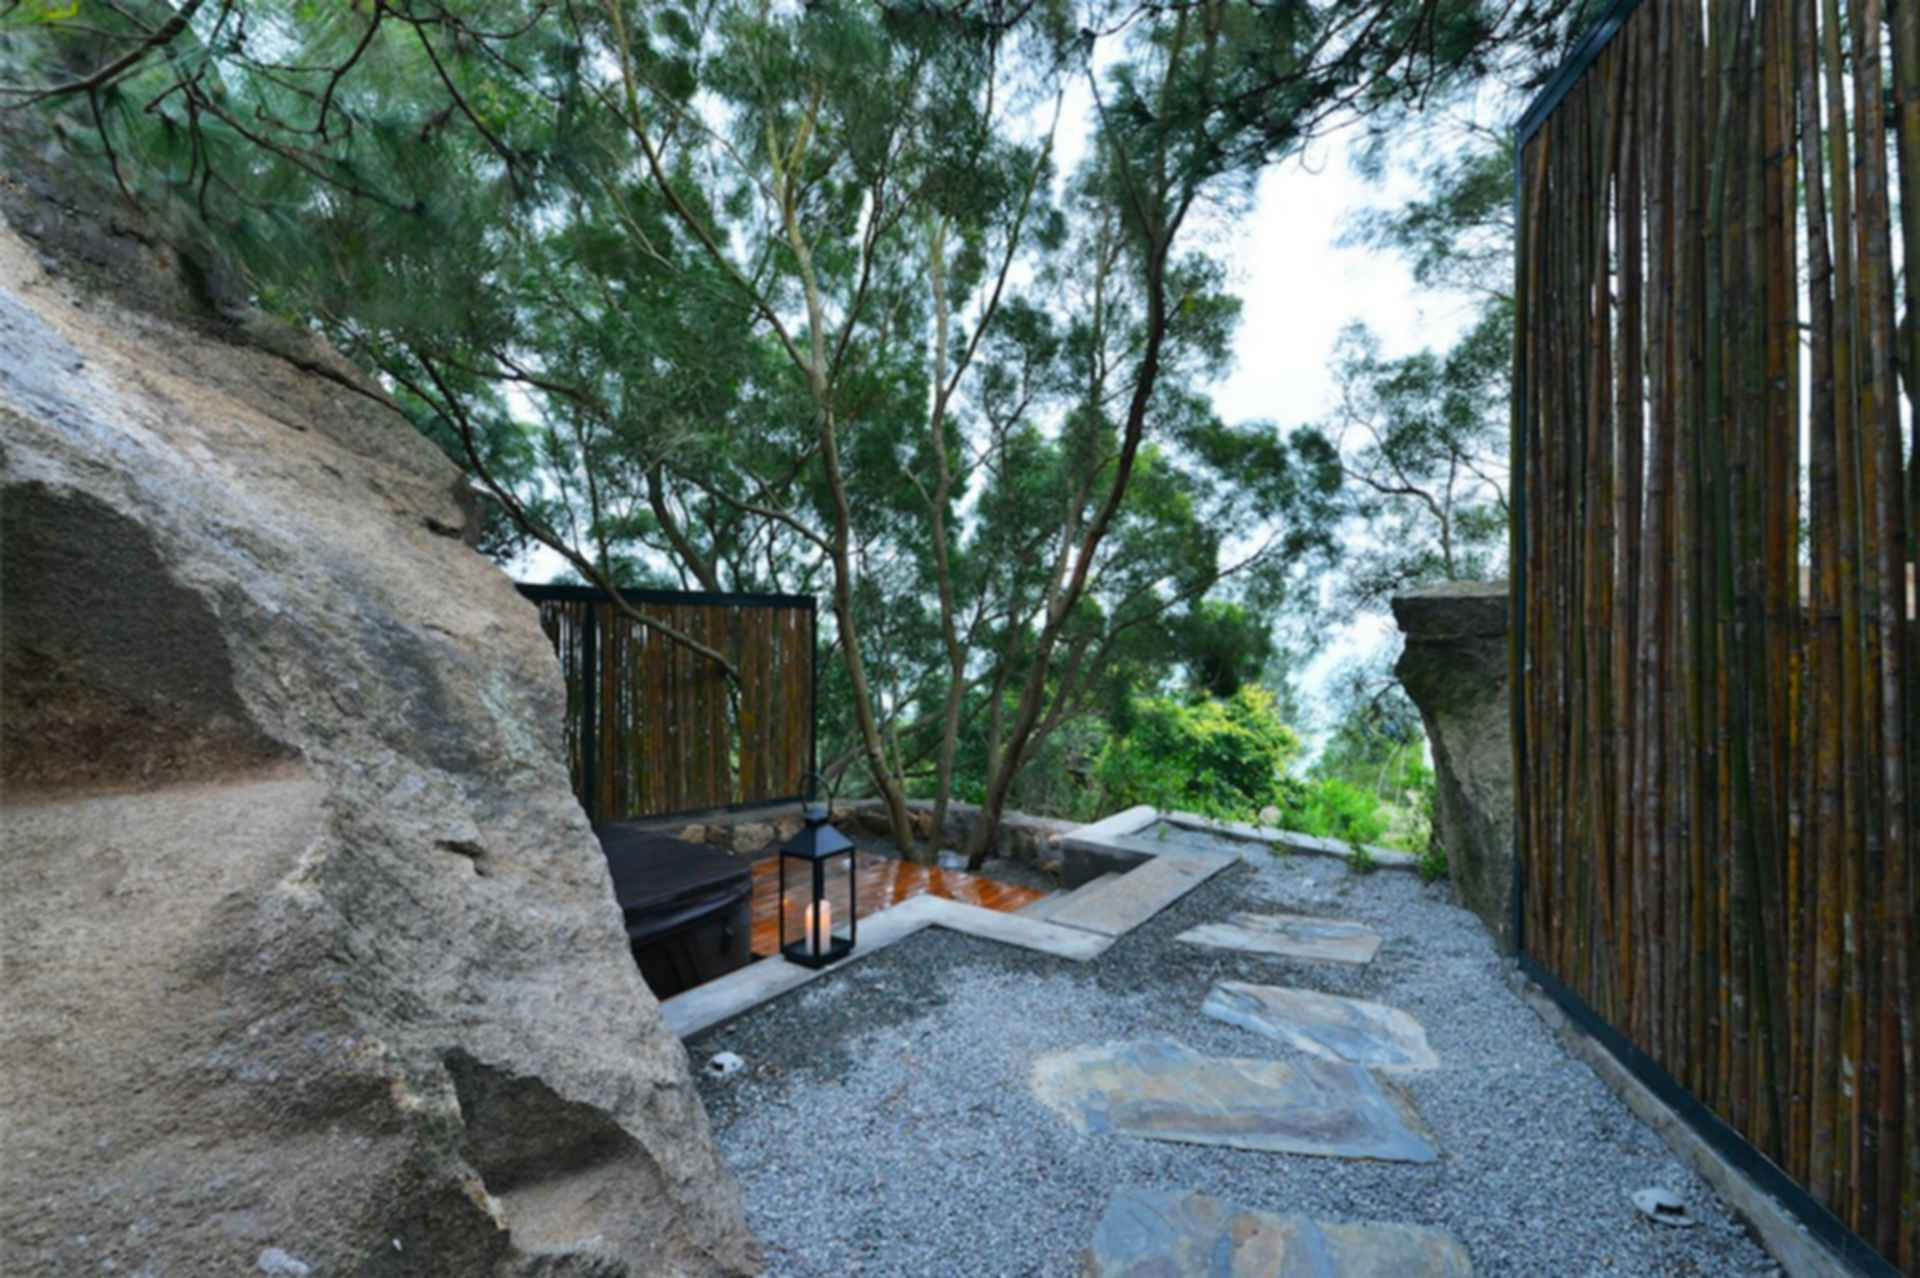 Nashare Hotel - exterior/landscaping